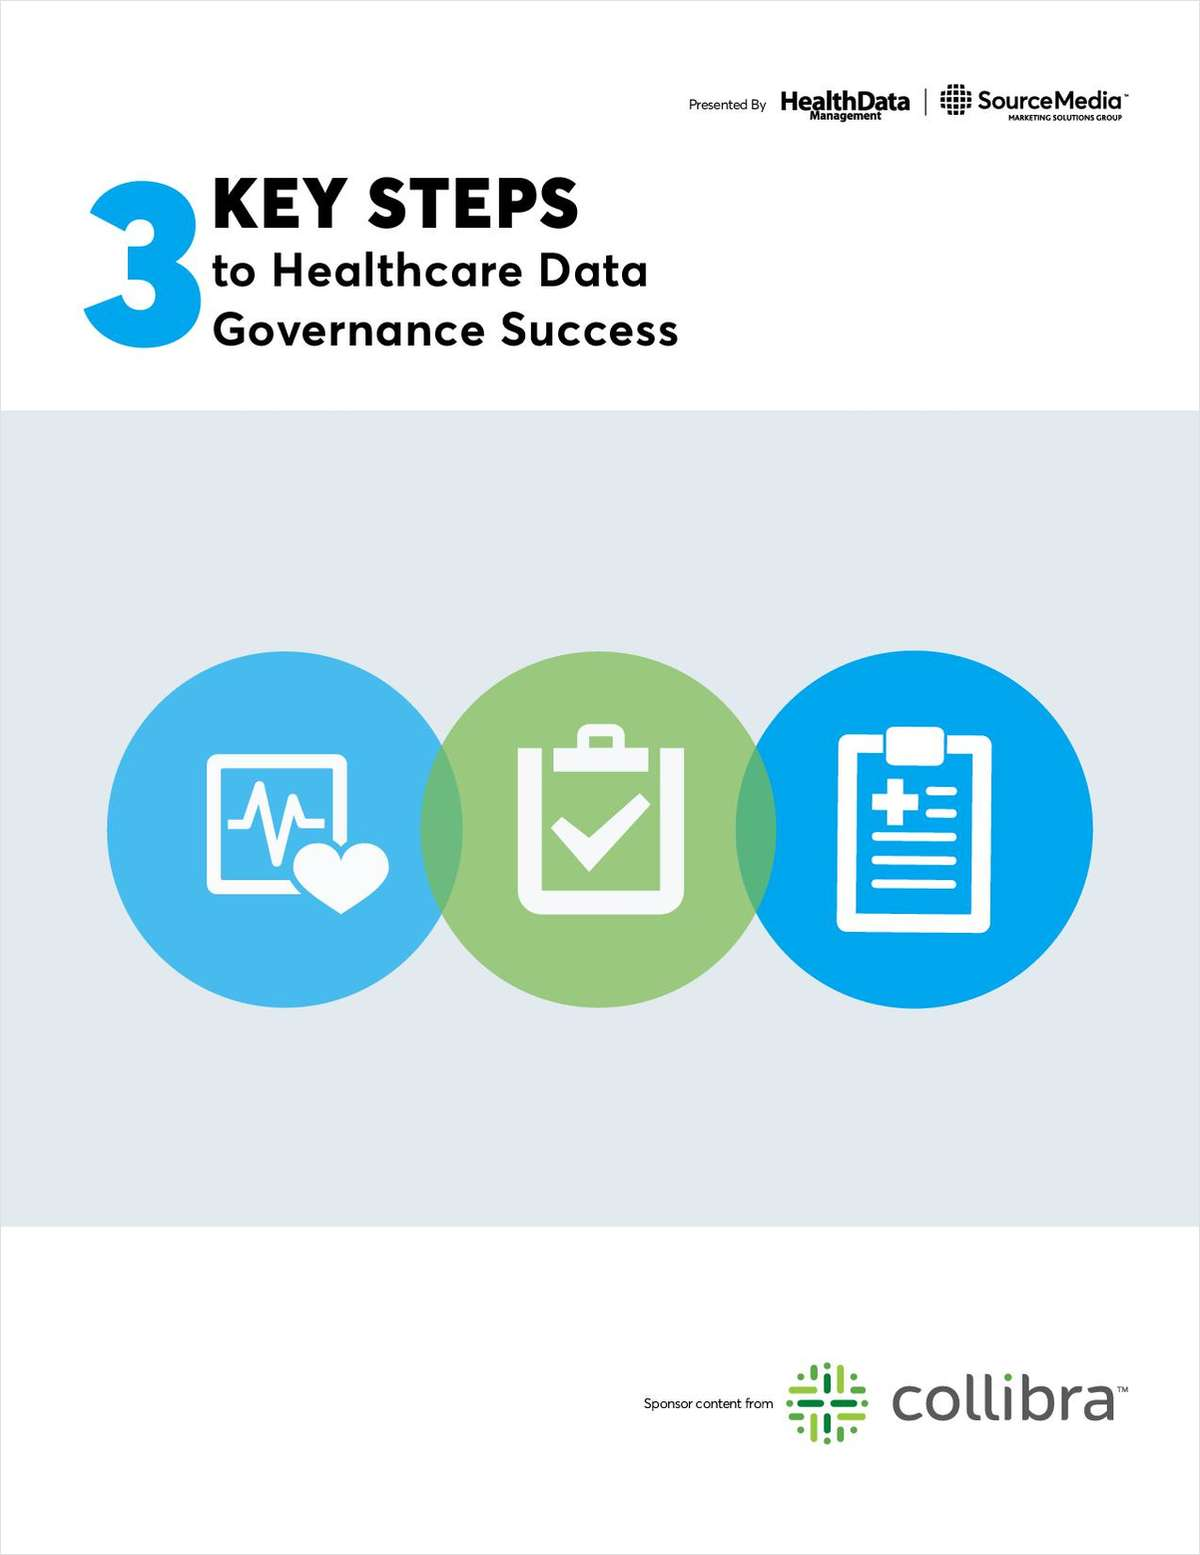 3 Key Steps to Healthcare Data Governance Success